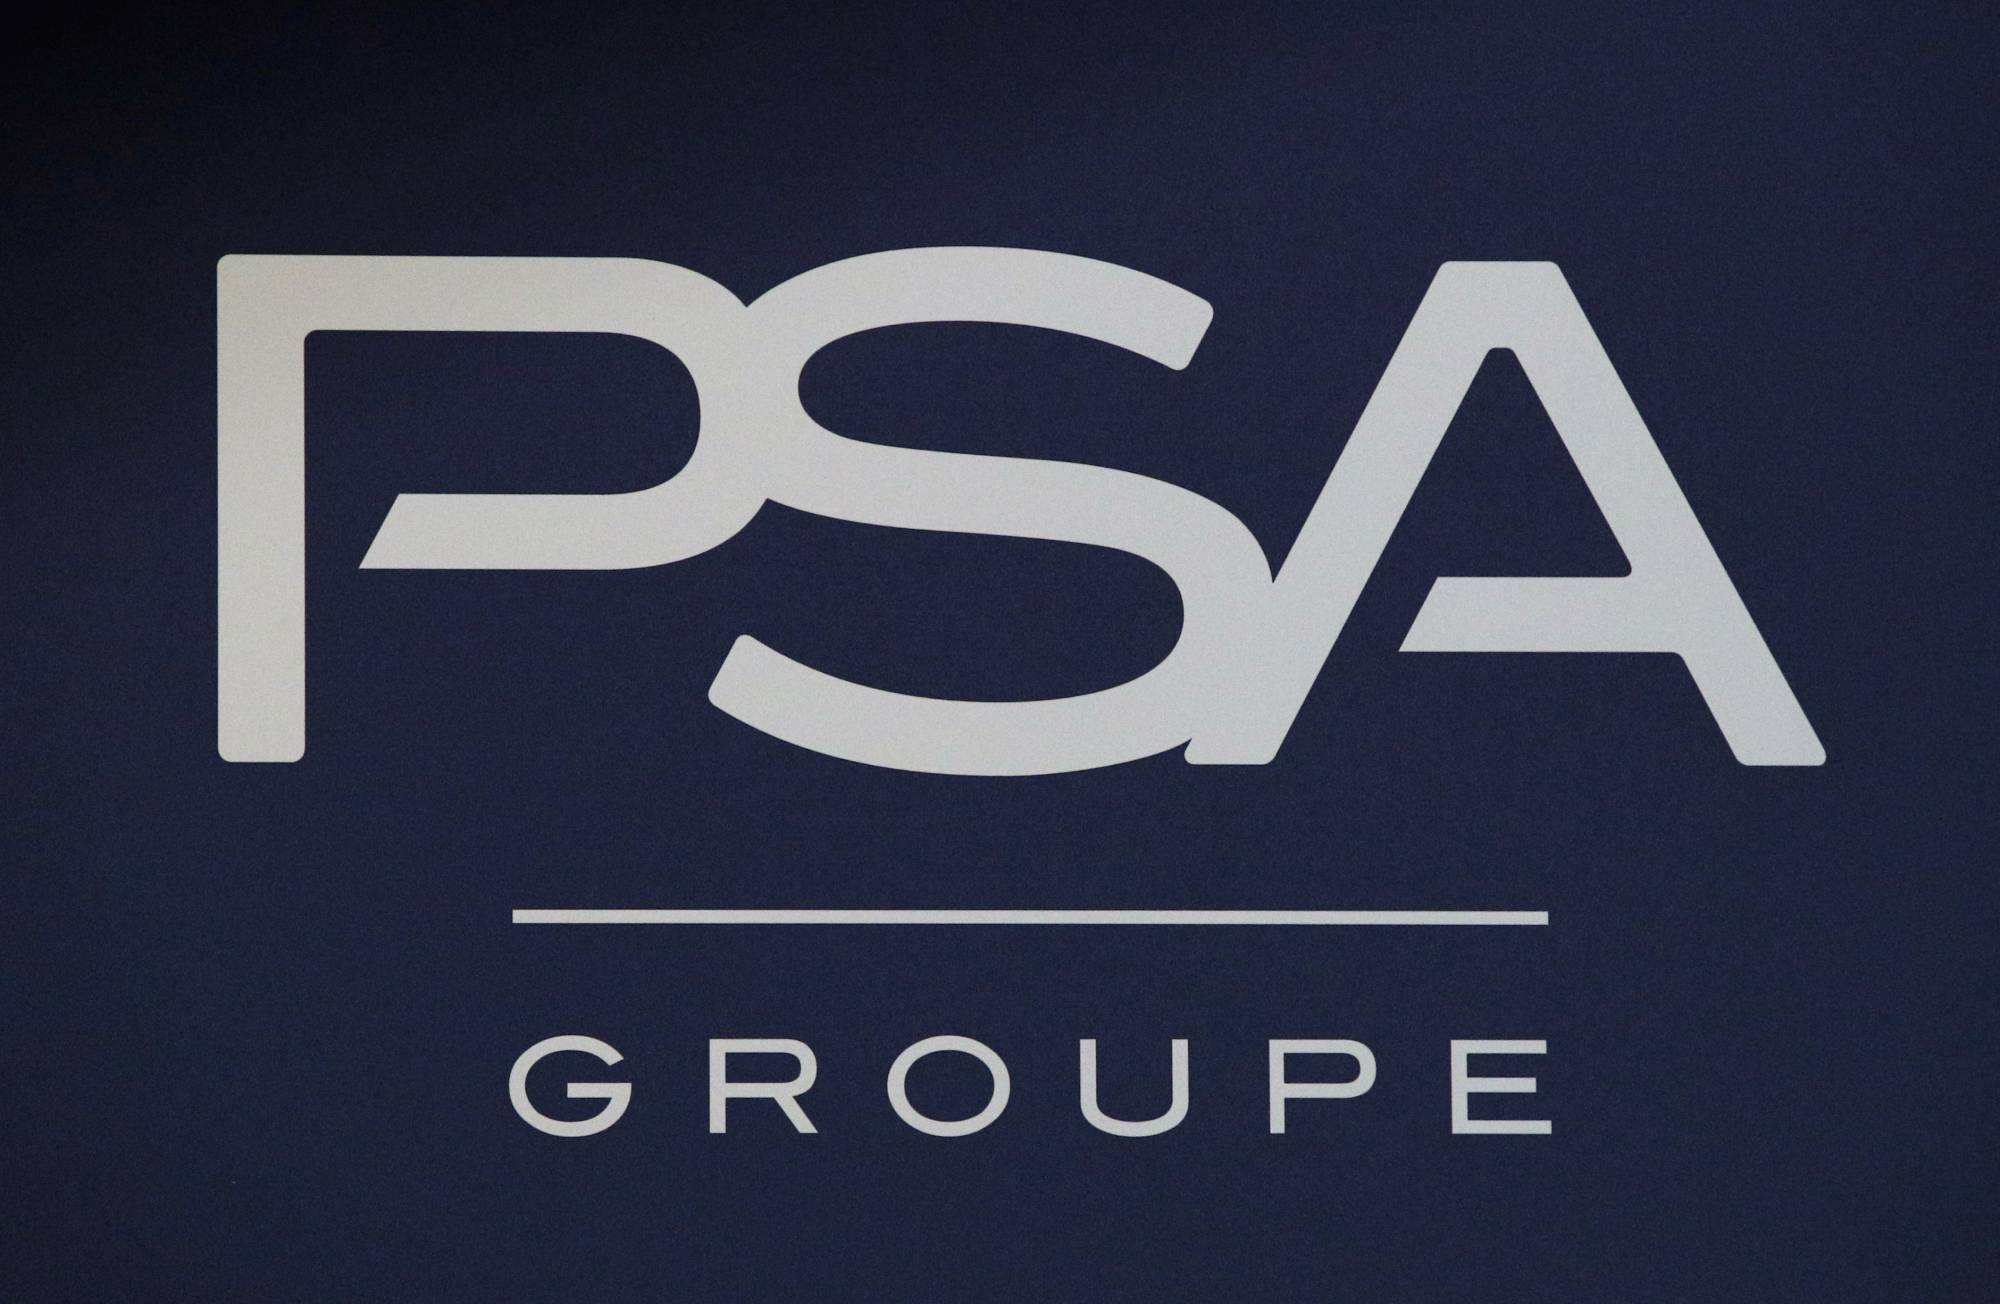 hight resolution of paris ap the latest on general motors sale of its european brands to psa group all times local 10 35 a m german economy minister brigitte zypries